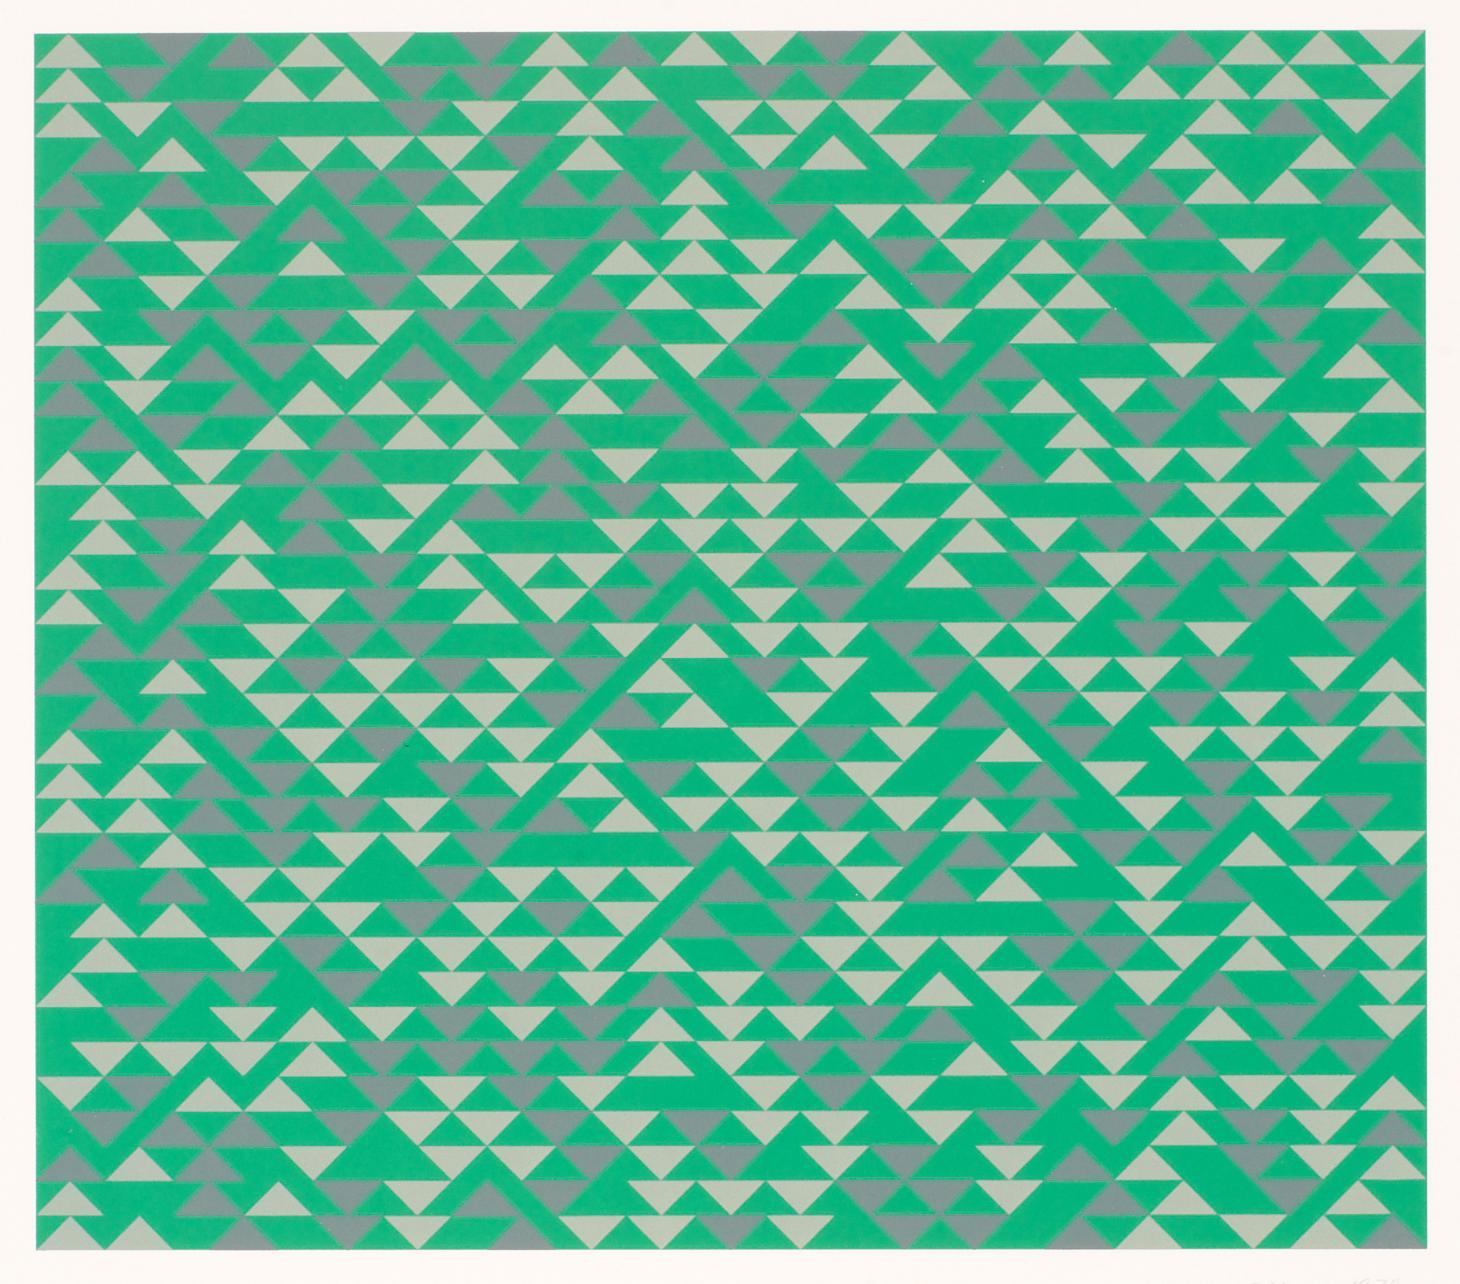 TR II lithograph, by Anni Albers